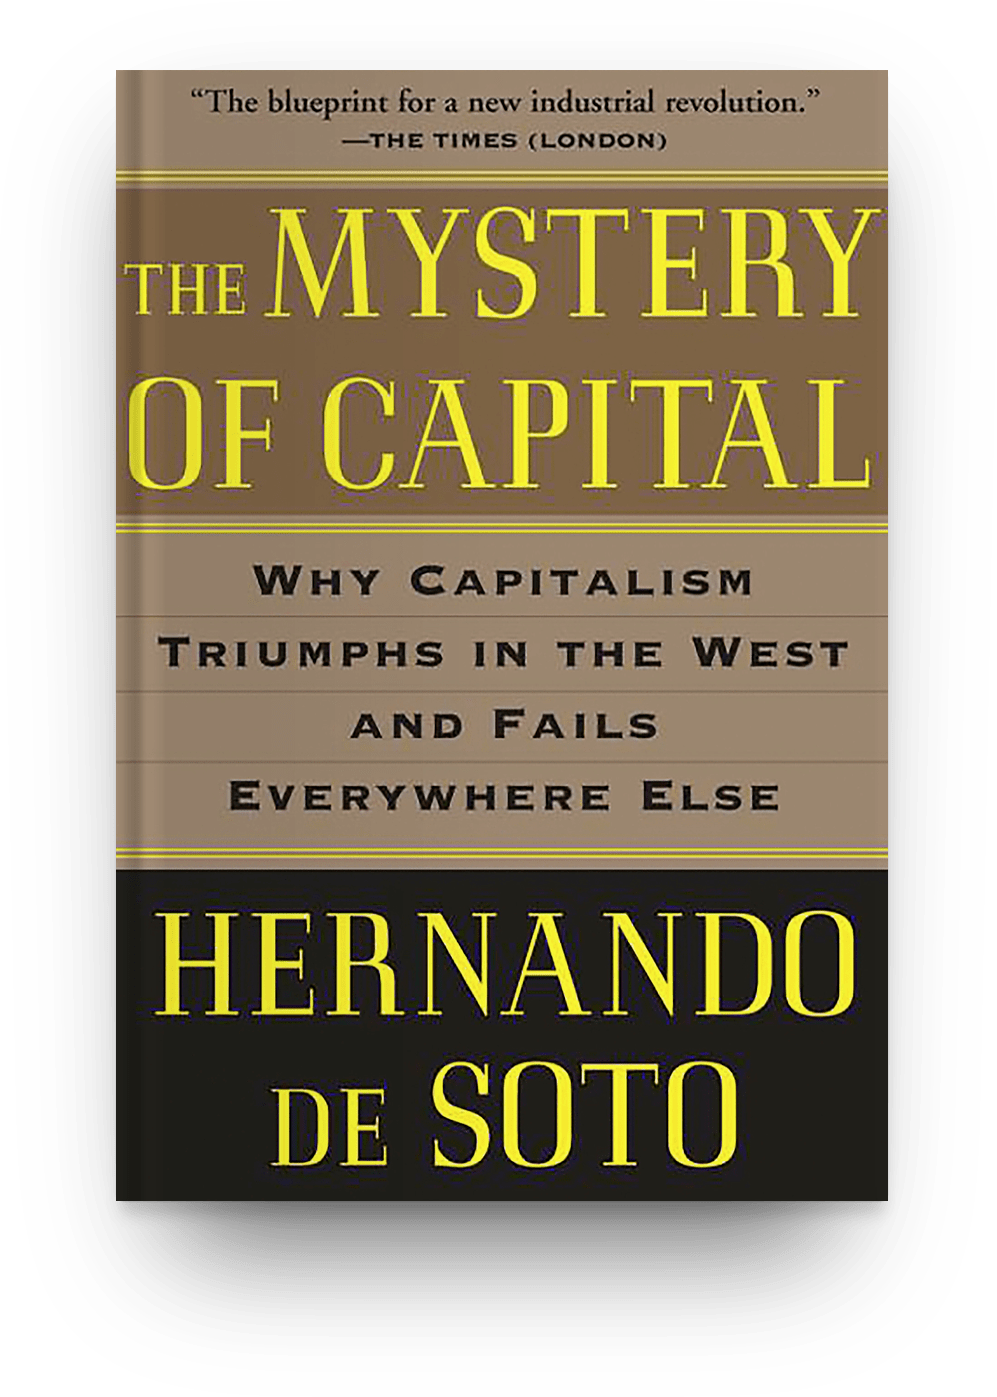 The Mystery of Capital: Why Capitalism Triumphs in the West and Fails Everywhere Else  by ​Hernando De Soto book cover